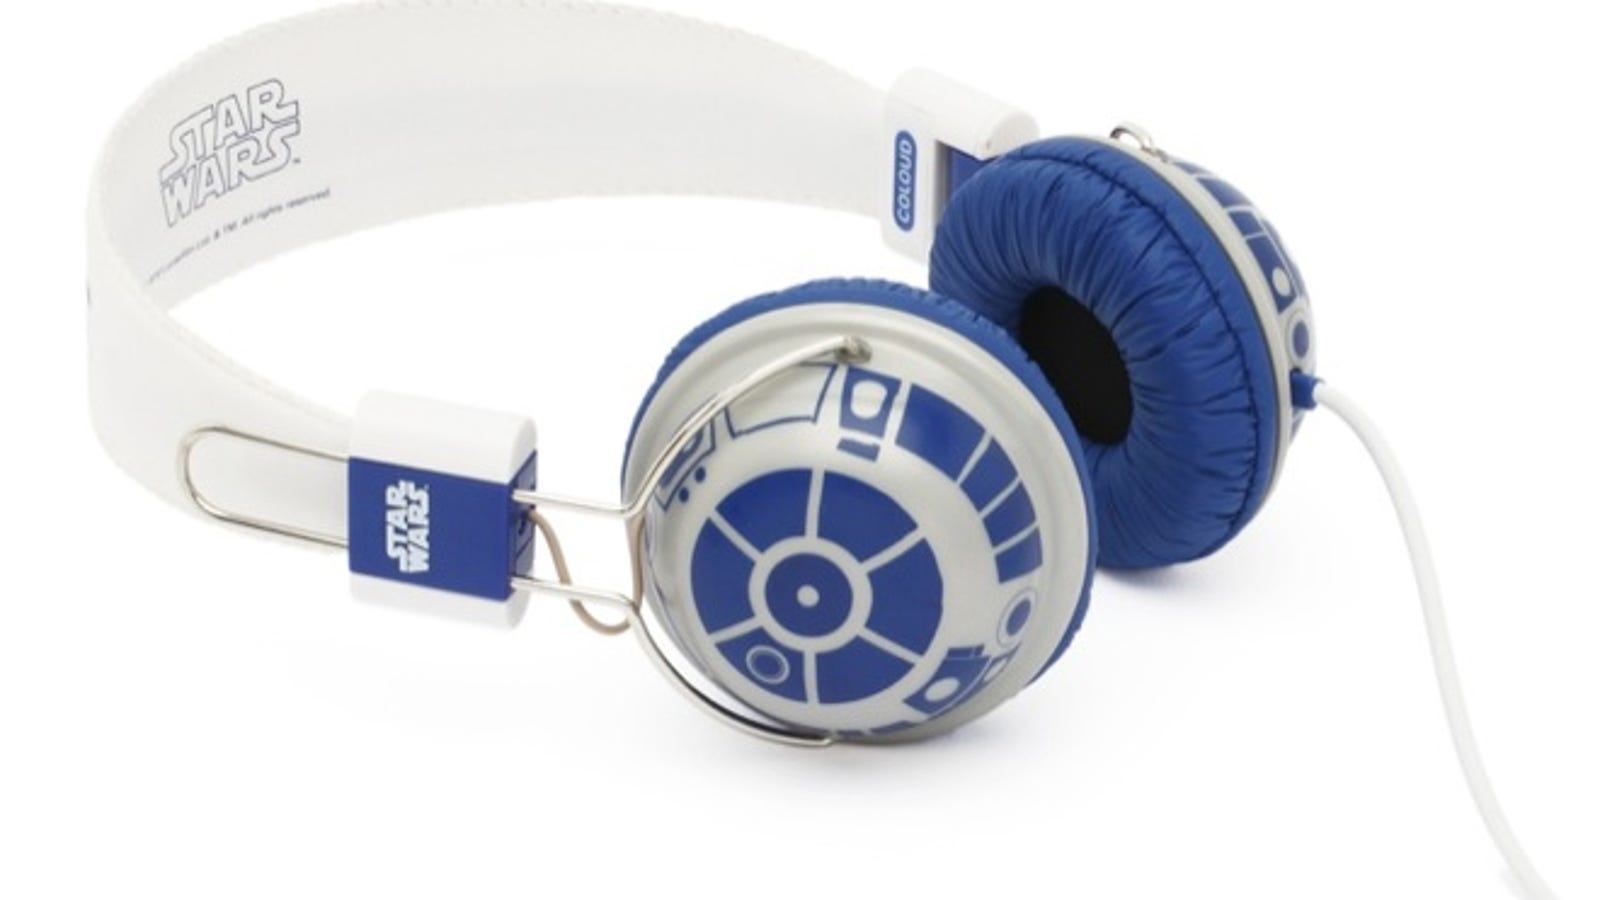 Listen Exclusively to the Mos Eisley Cantina Band On Coloud's R2-D2 Headphones